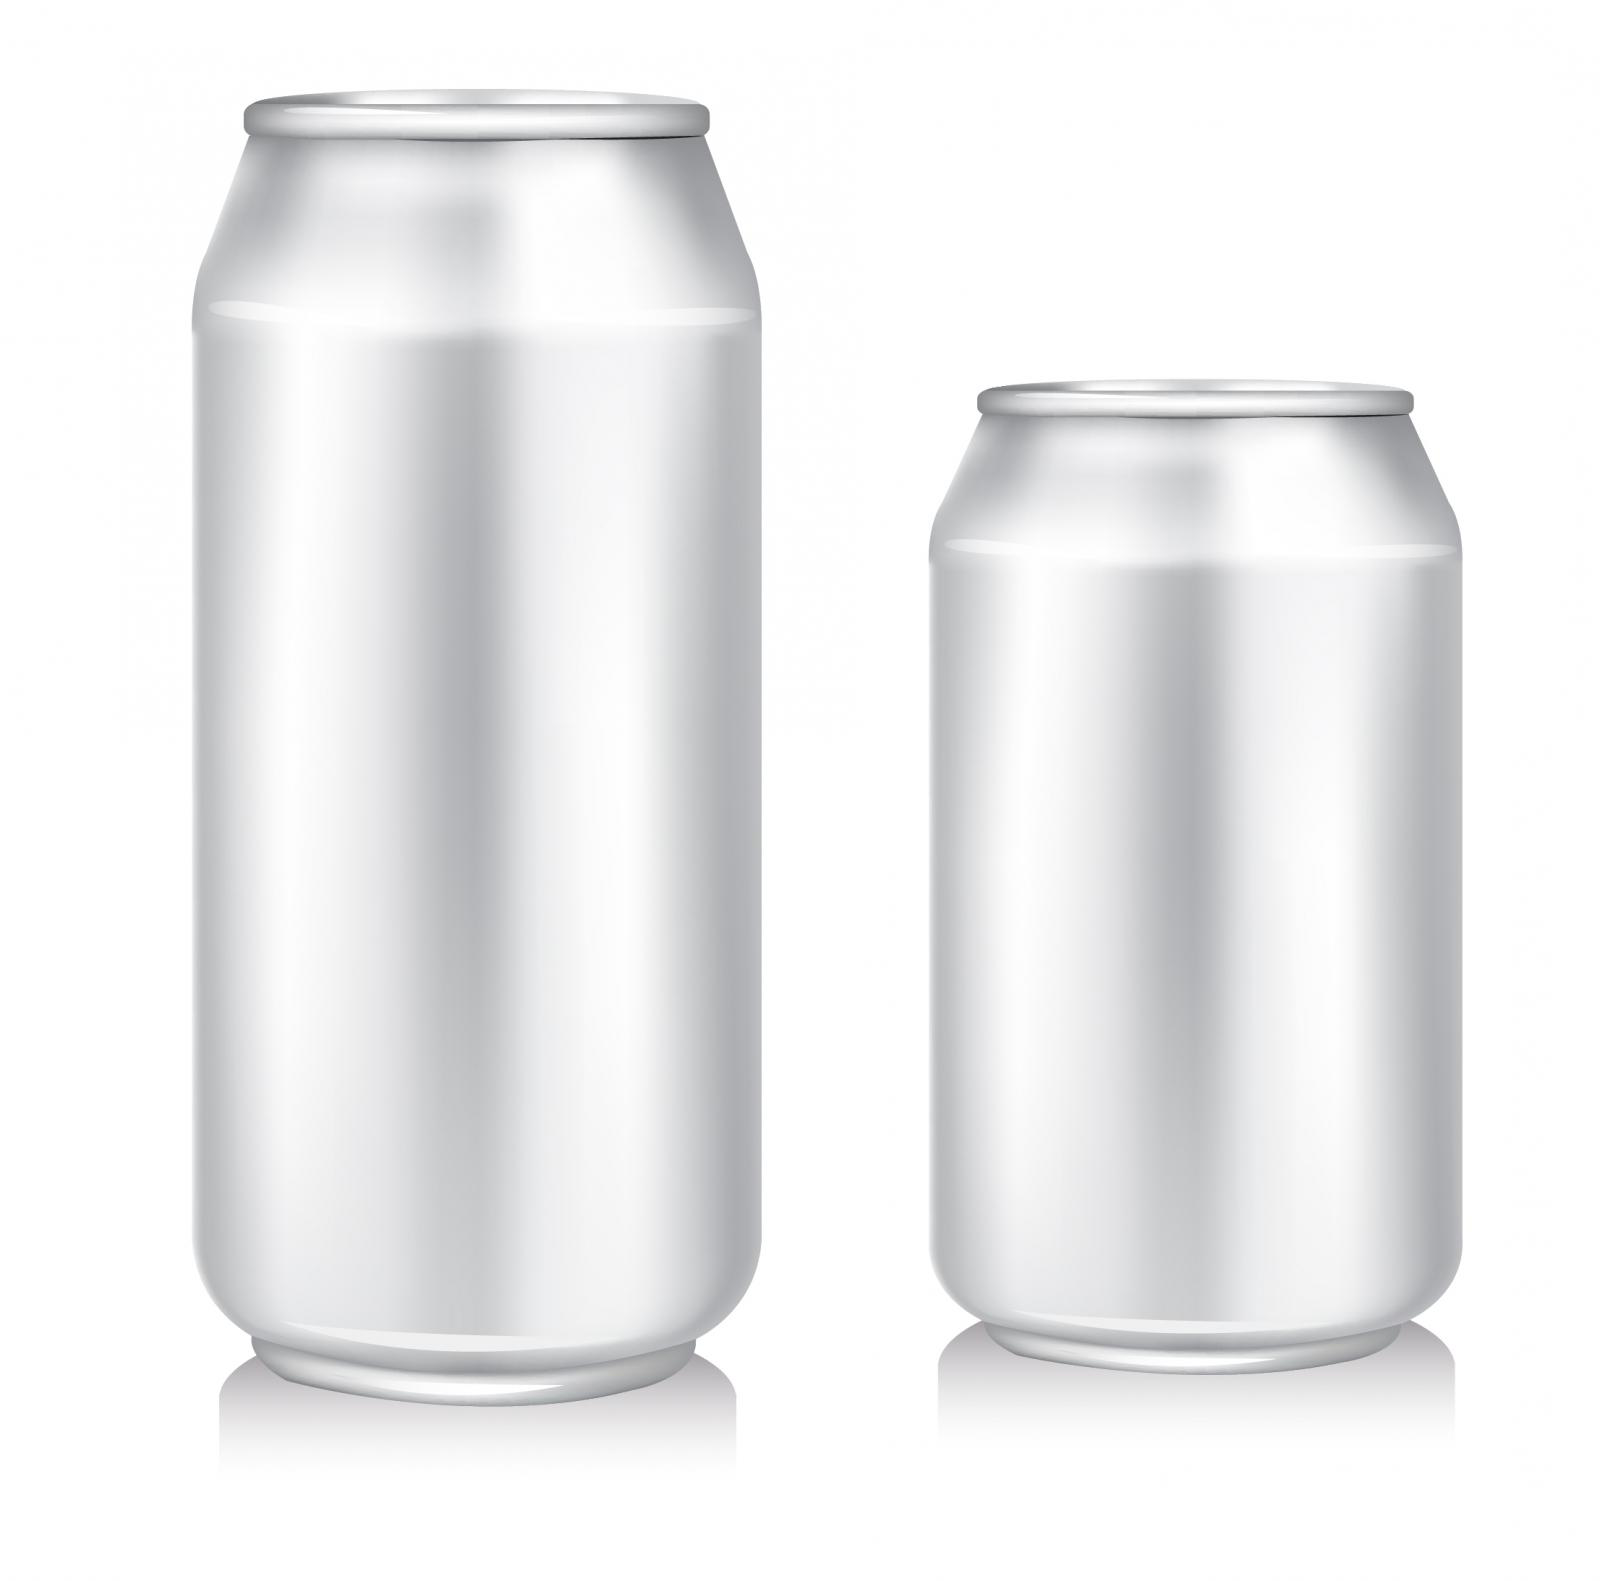 Cans-craft-beer-jpg